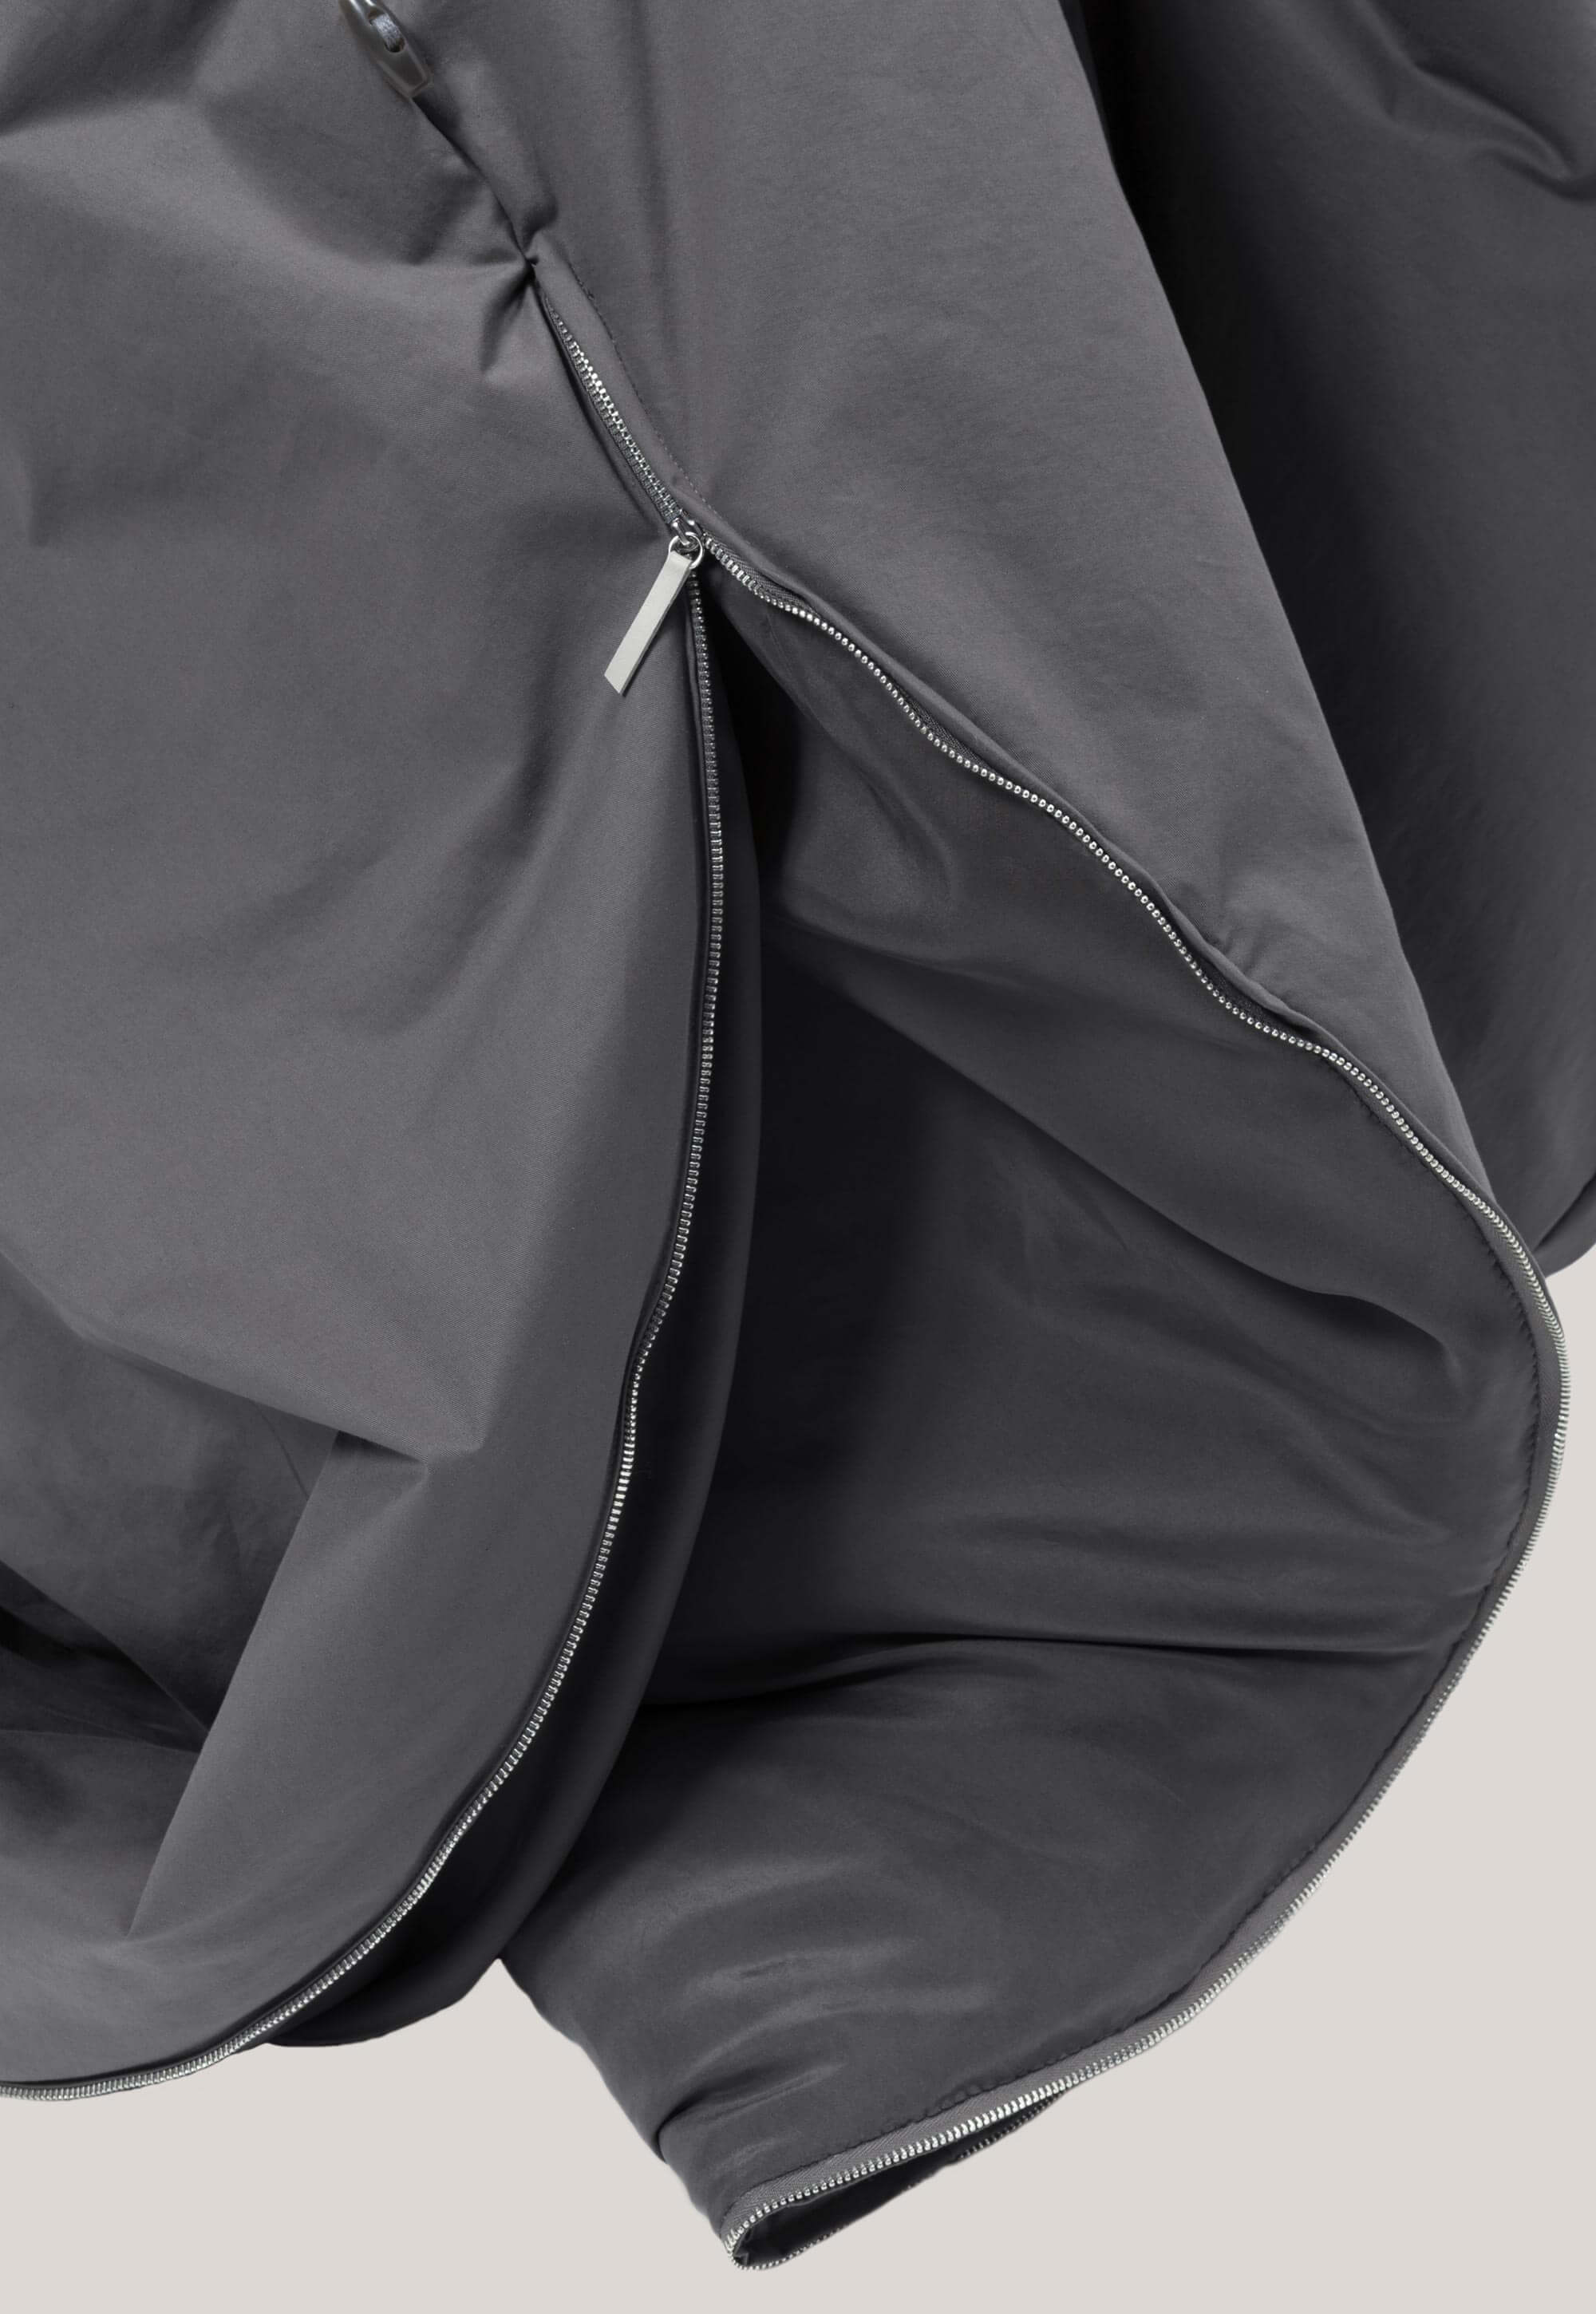 nebukuro-sleepingbag-minimal-detail-01